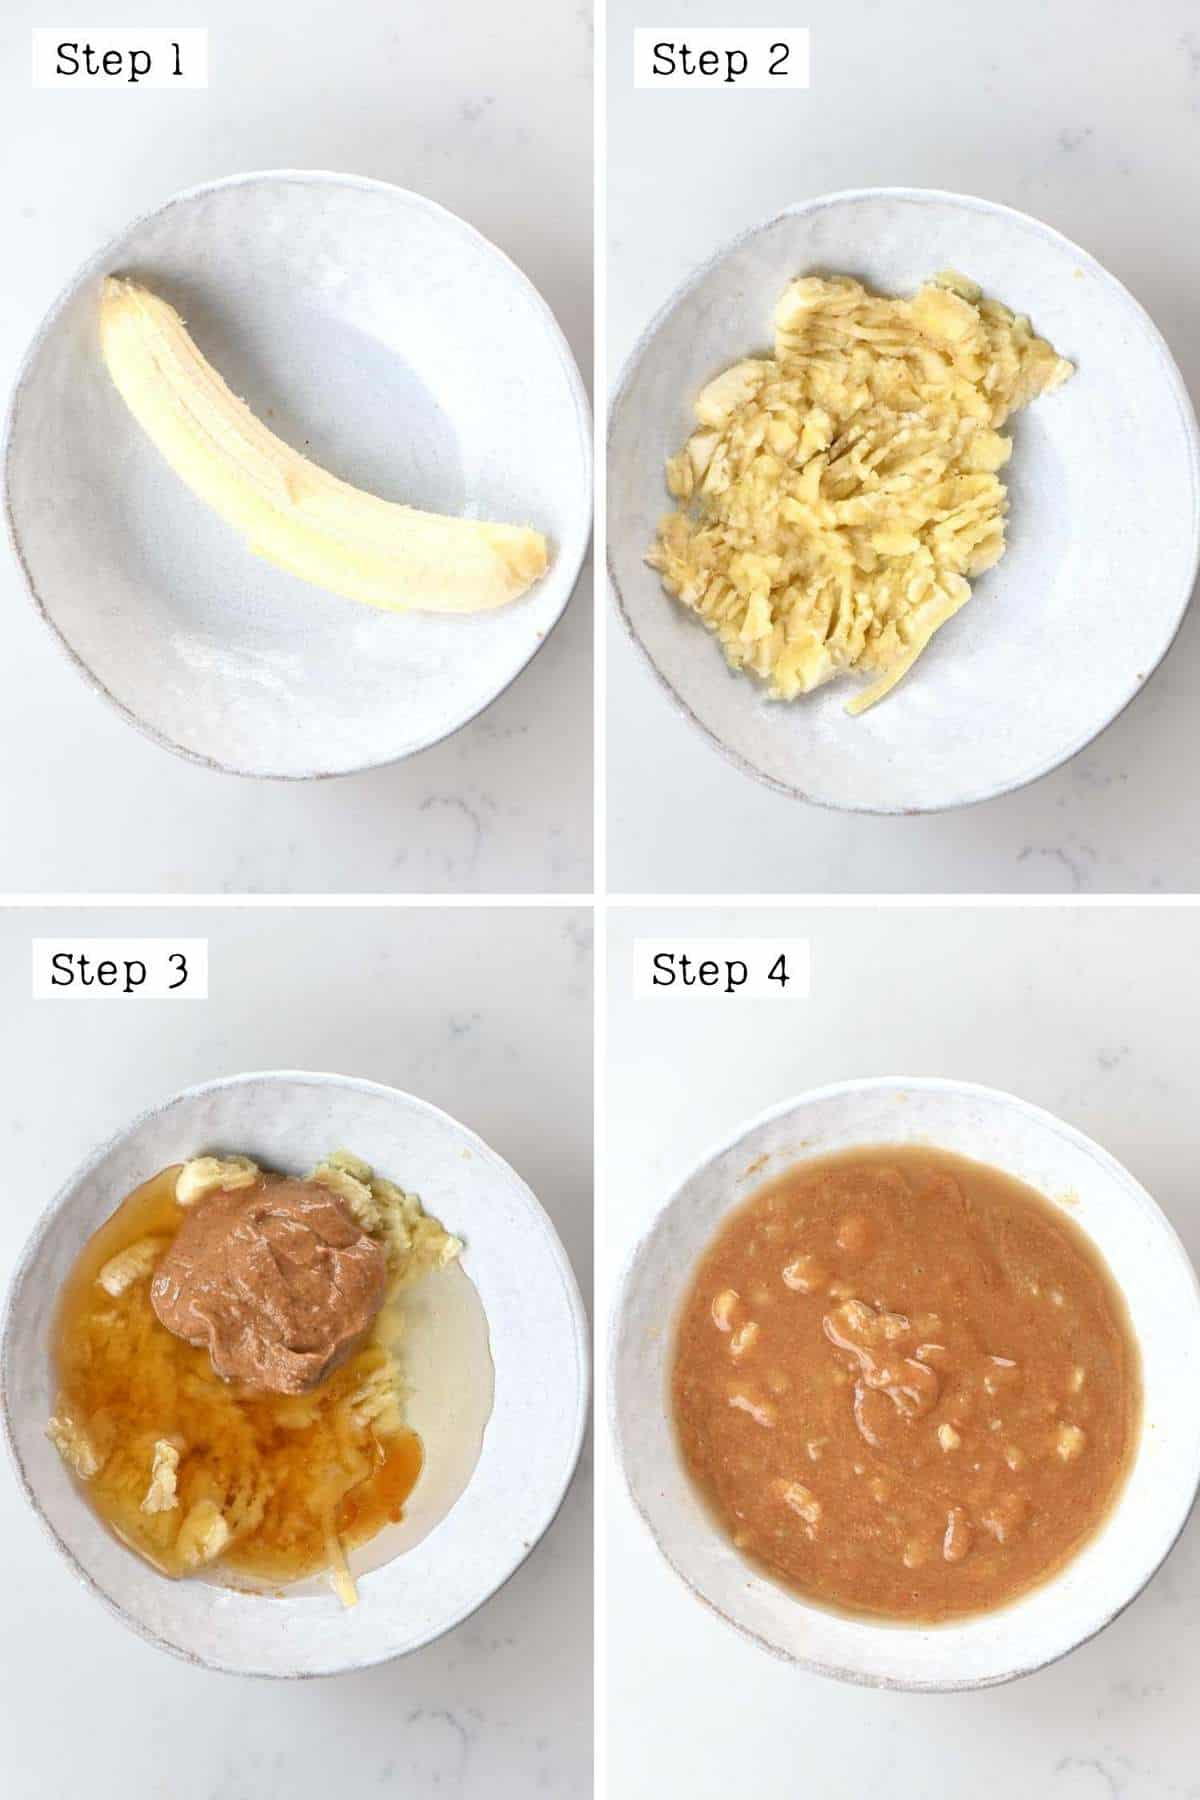 Steps for mixing the wet ingredients of the granola pizza